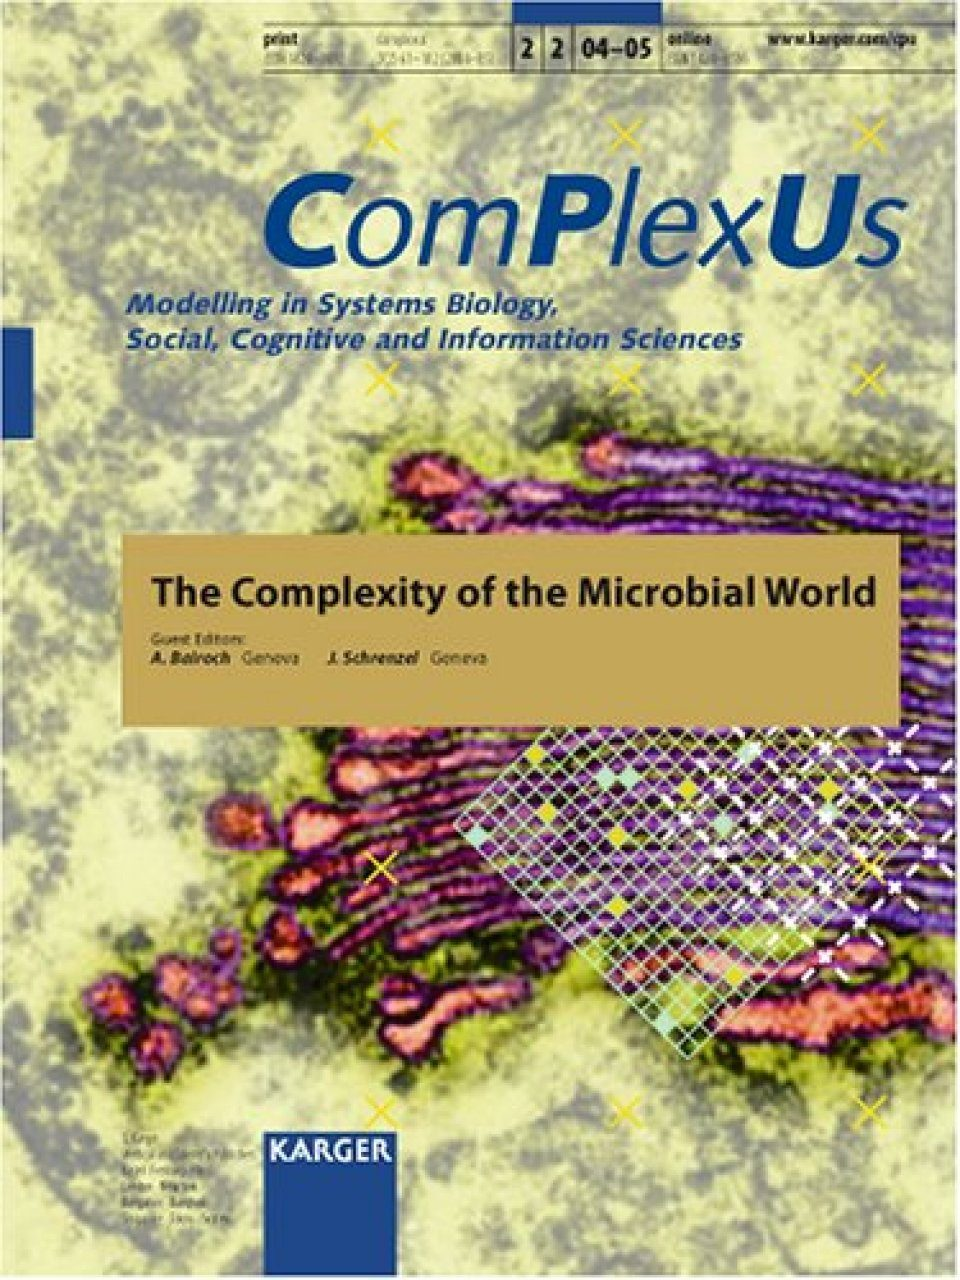 The Complexity of the Microbial World